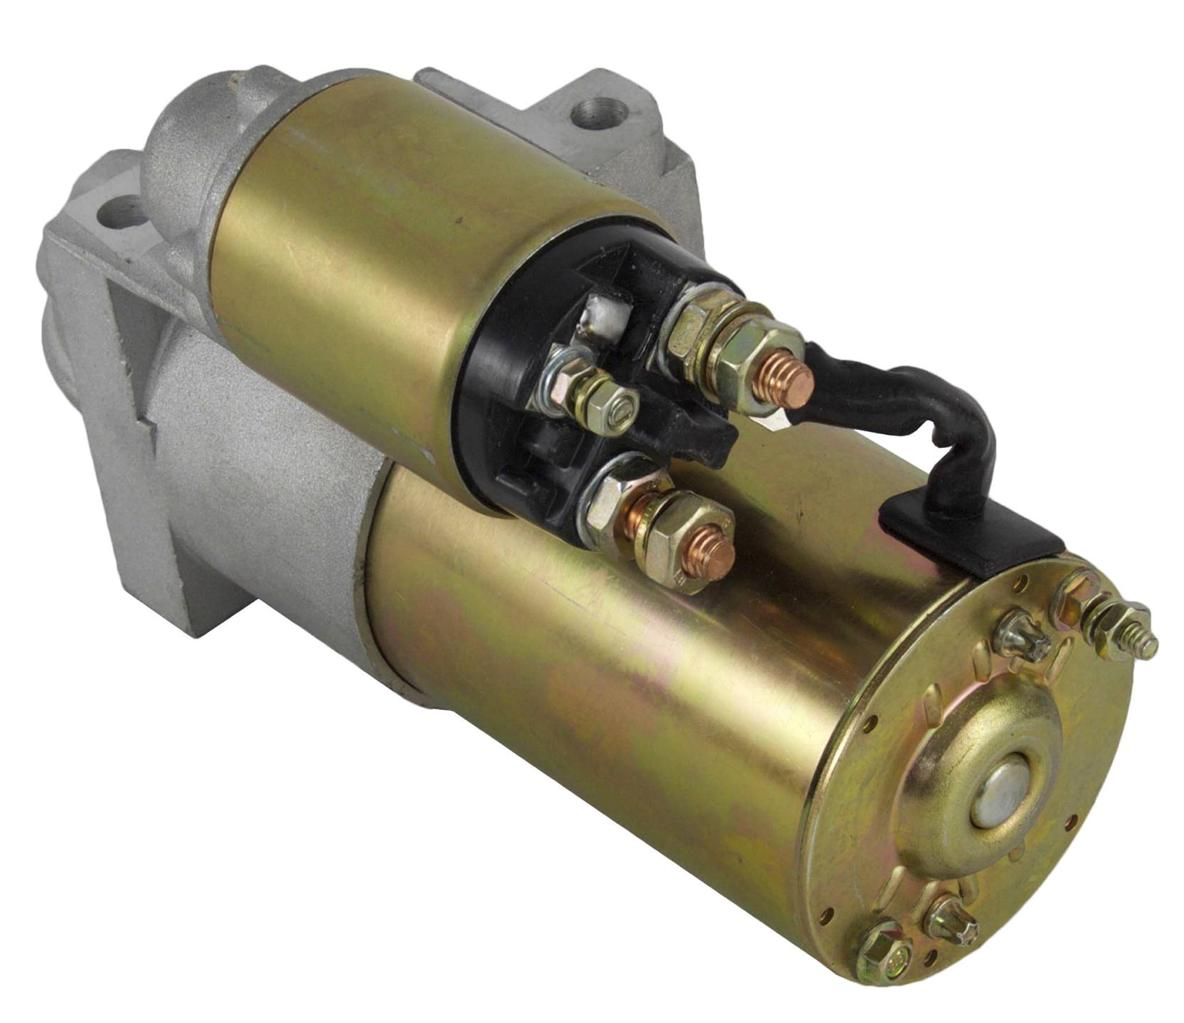 Details about CHEVY 305 350 454 MINI SMALL BLOCK STARTER FITS HI-TORQ  323-255 1108429 12560019